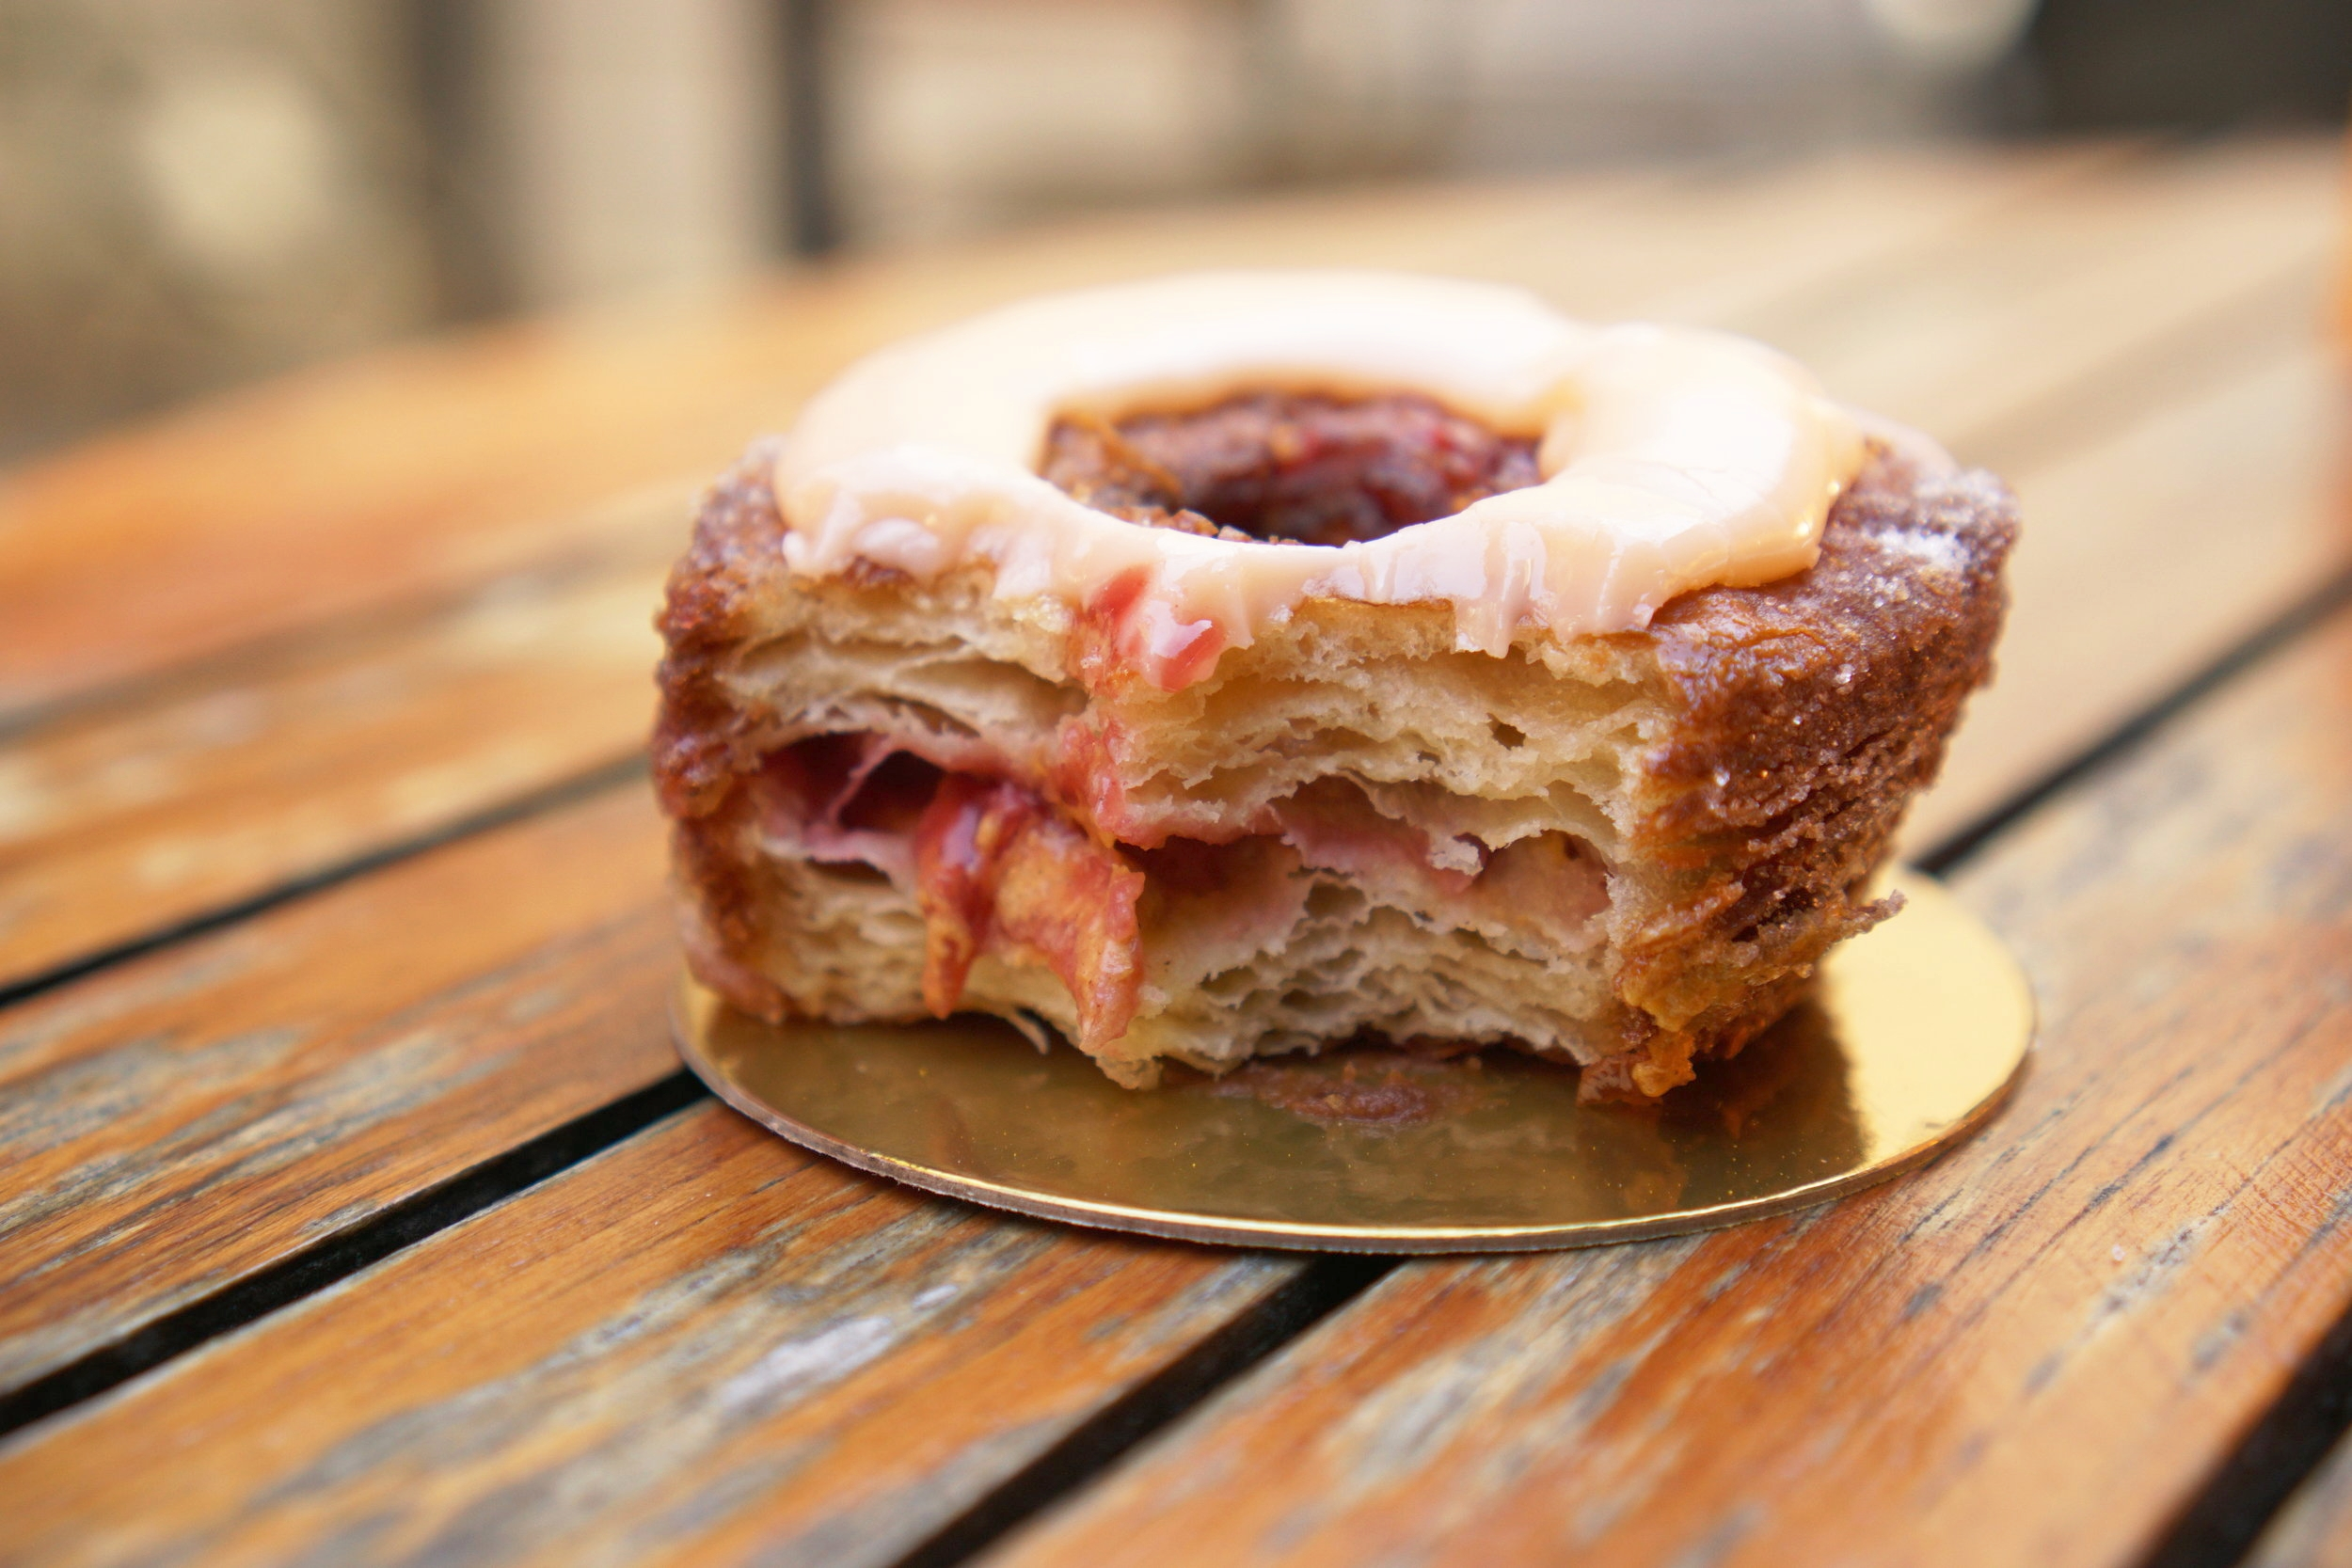 The Original Cronut from Dominique Ansel Bakery in NYC